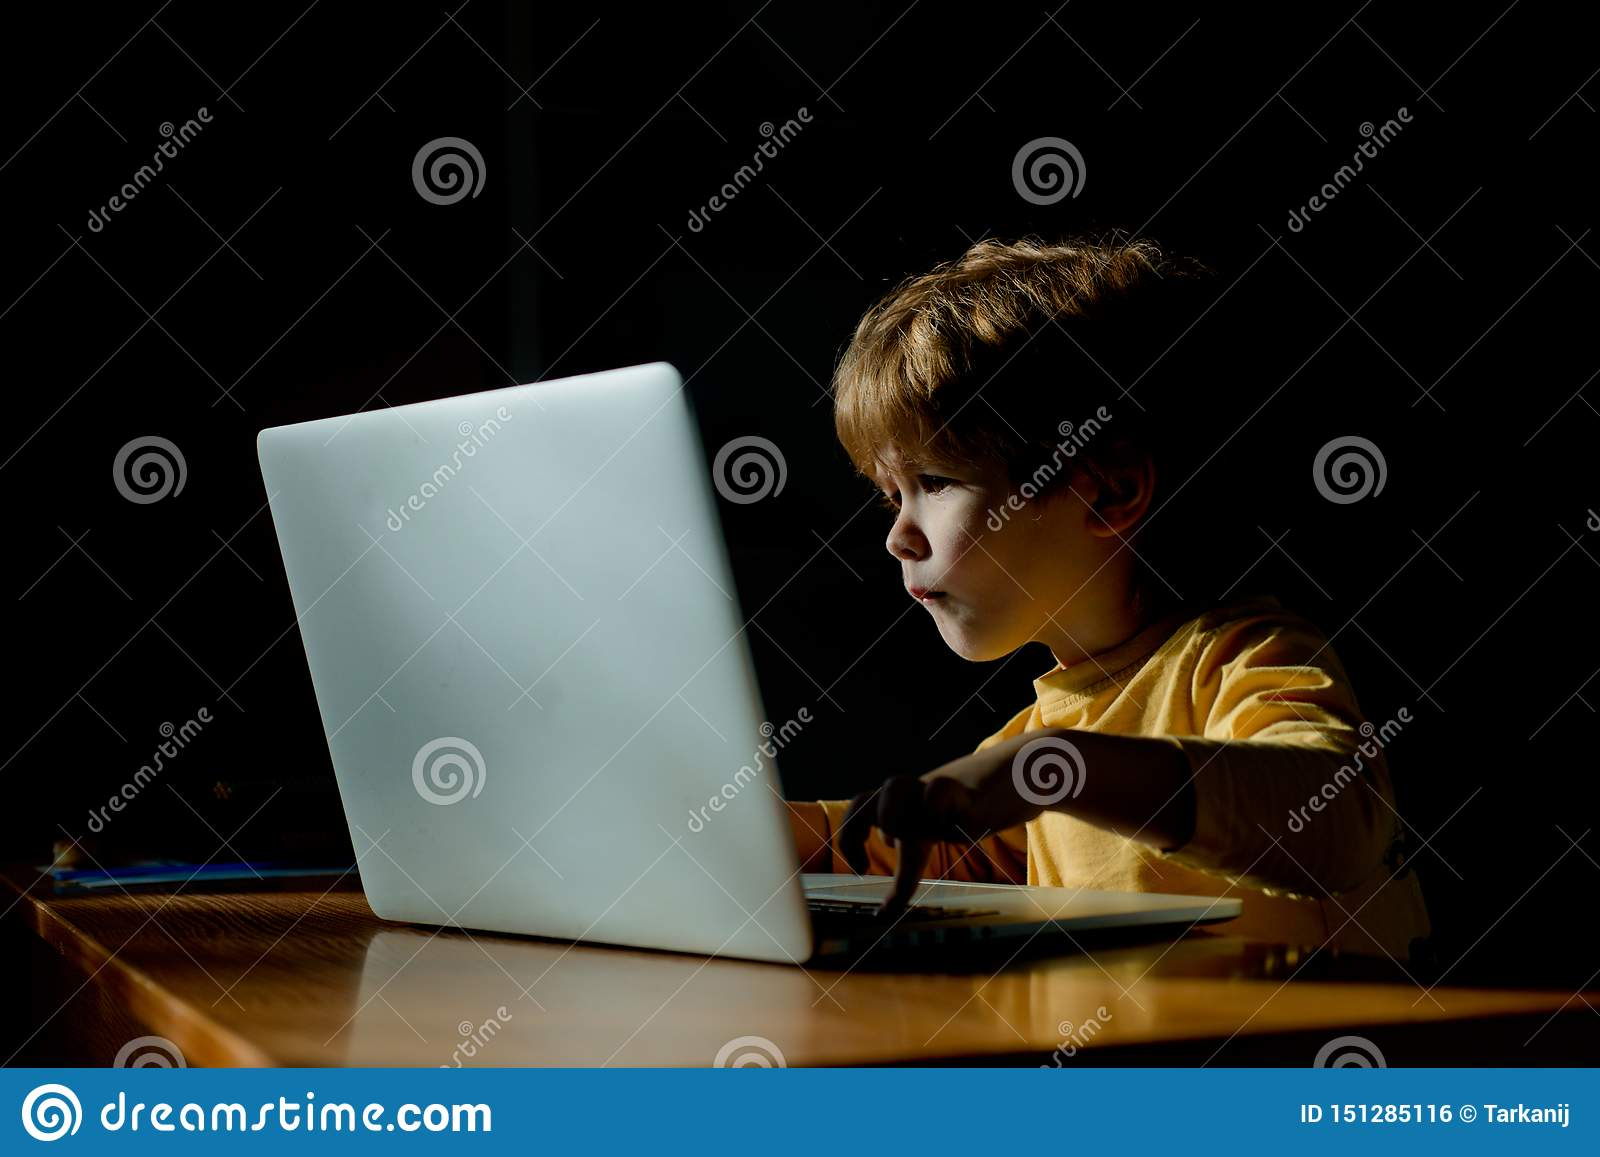 Technology. Computer user. The child looks with passion at the computer screen. Monitor, interest information for